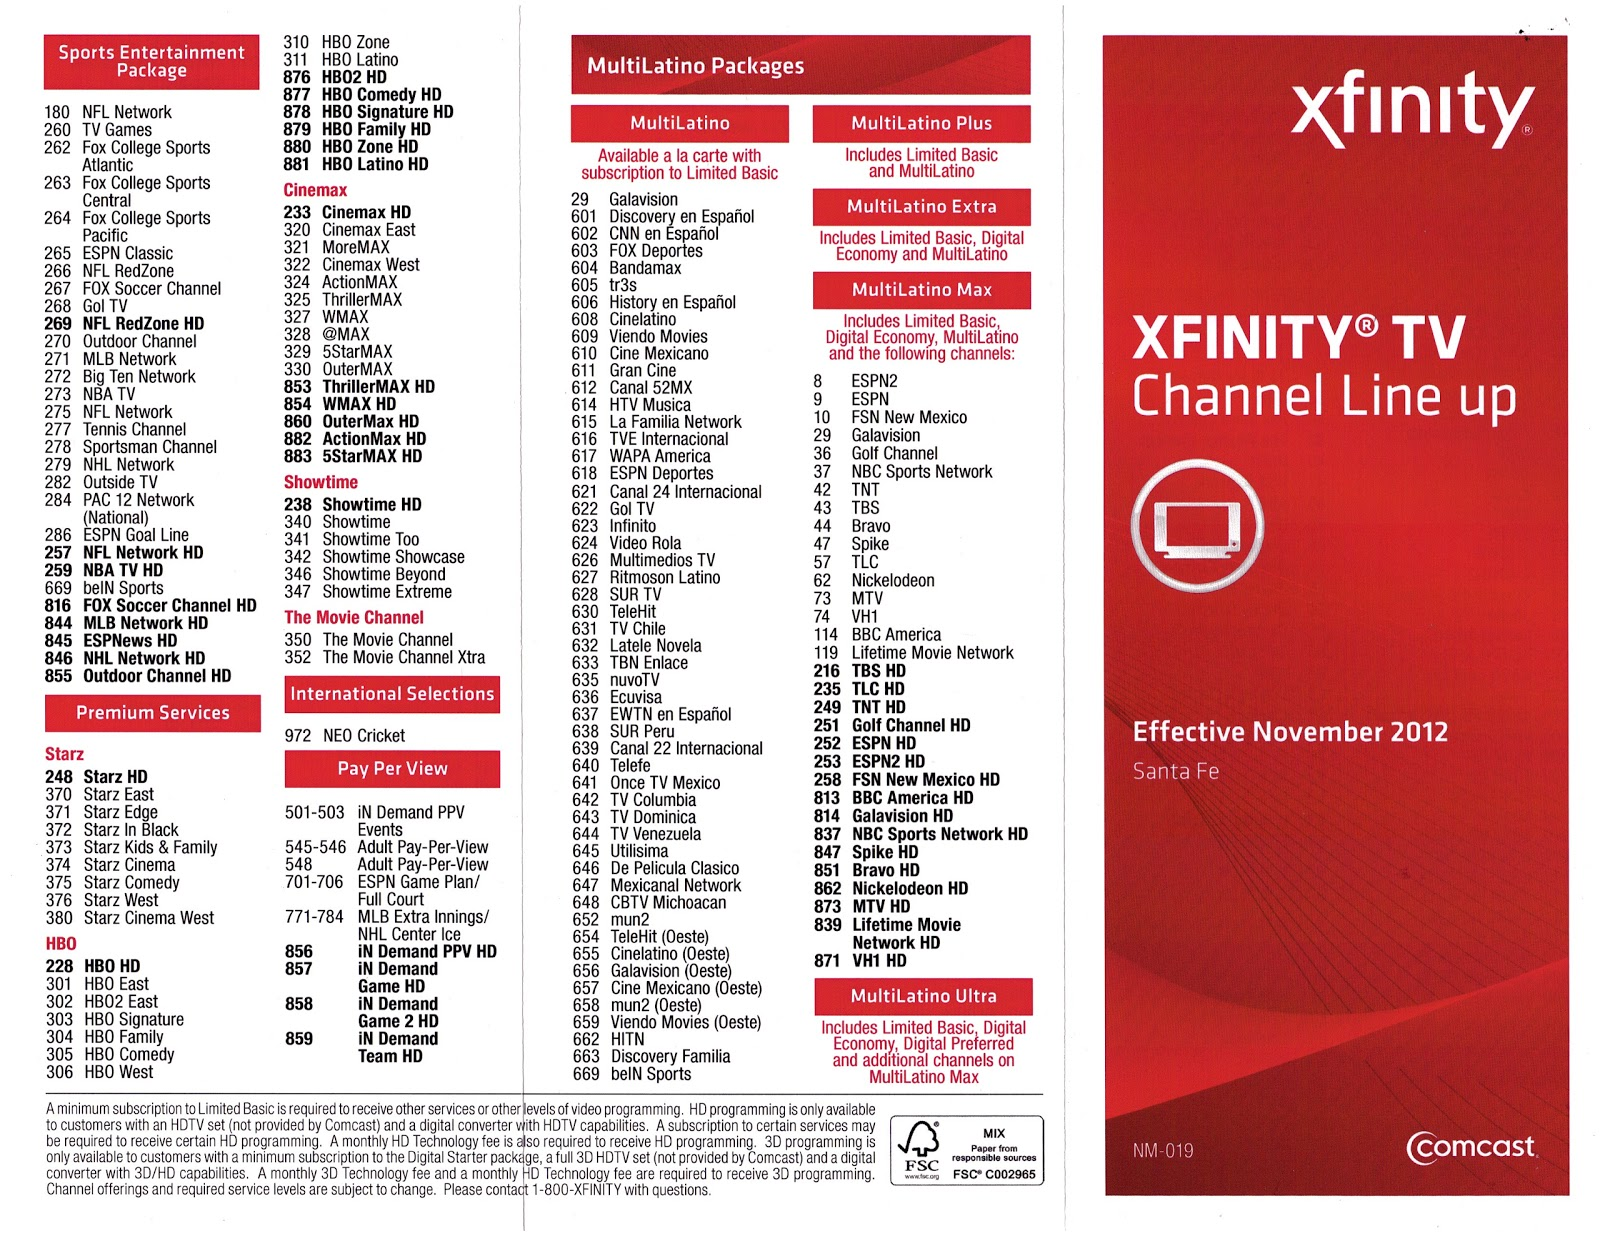 infinity comcast tv guide open source user manual u2022 rh dramatic varieties com Comcast Channel Guide Roseville MN Comcast Cable Channels